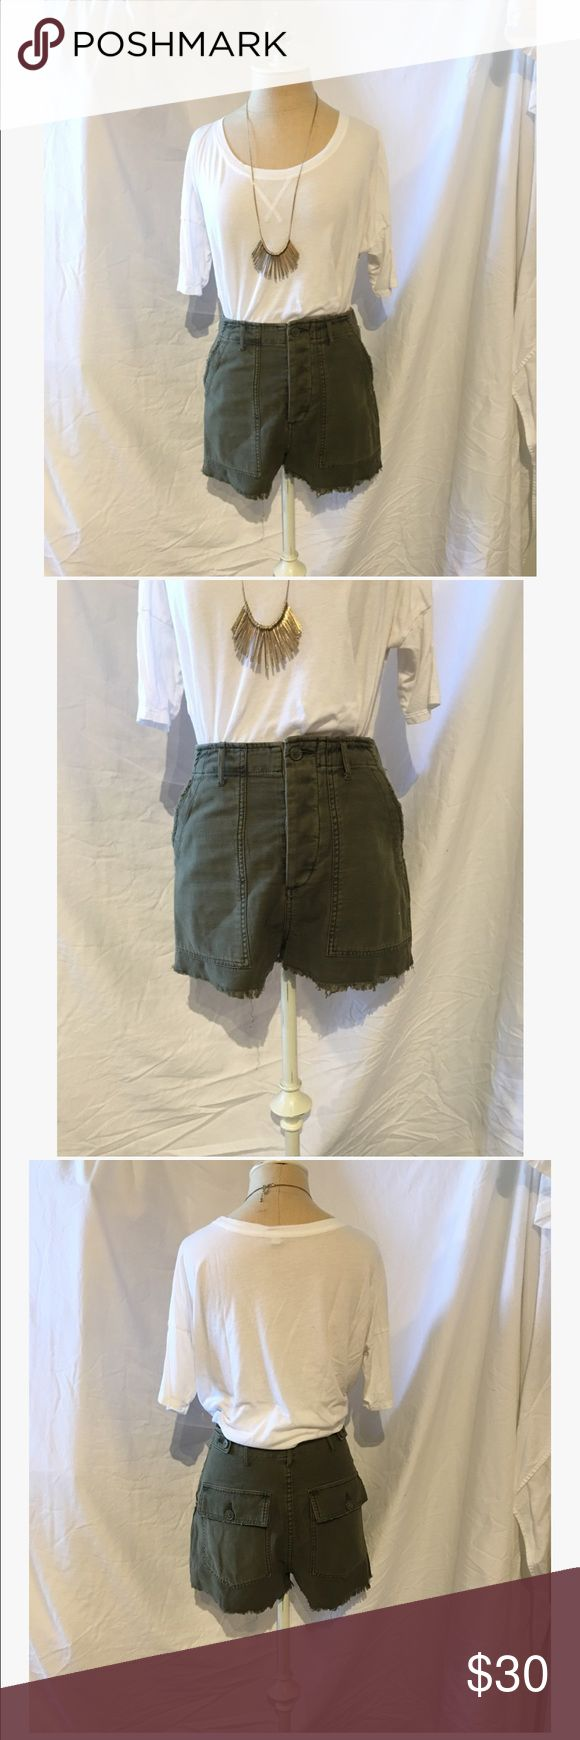 Urban Outfitters High Waisted Army Shorts 5 buttons, fringe ends, high waisted Urban Outfitters Shorts